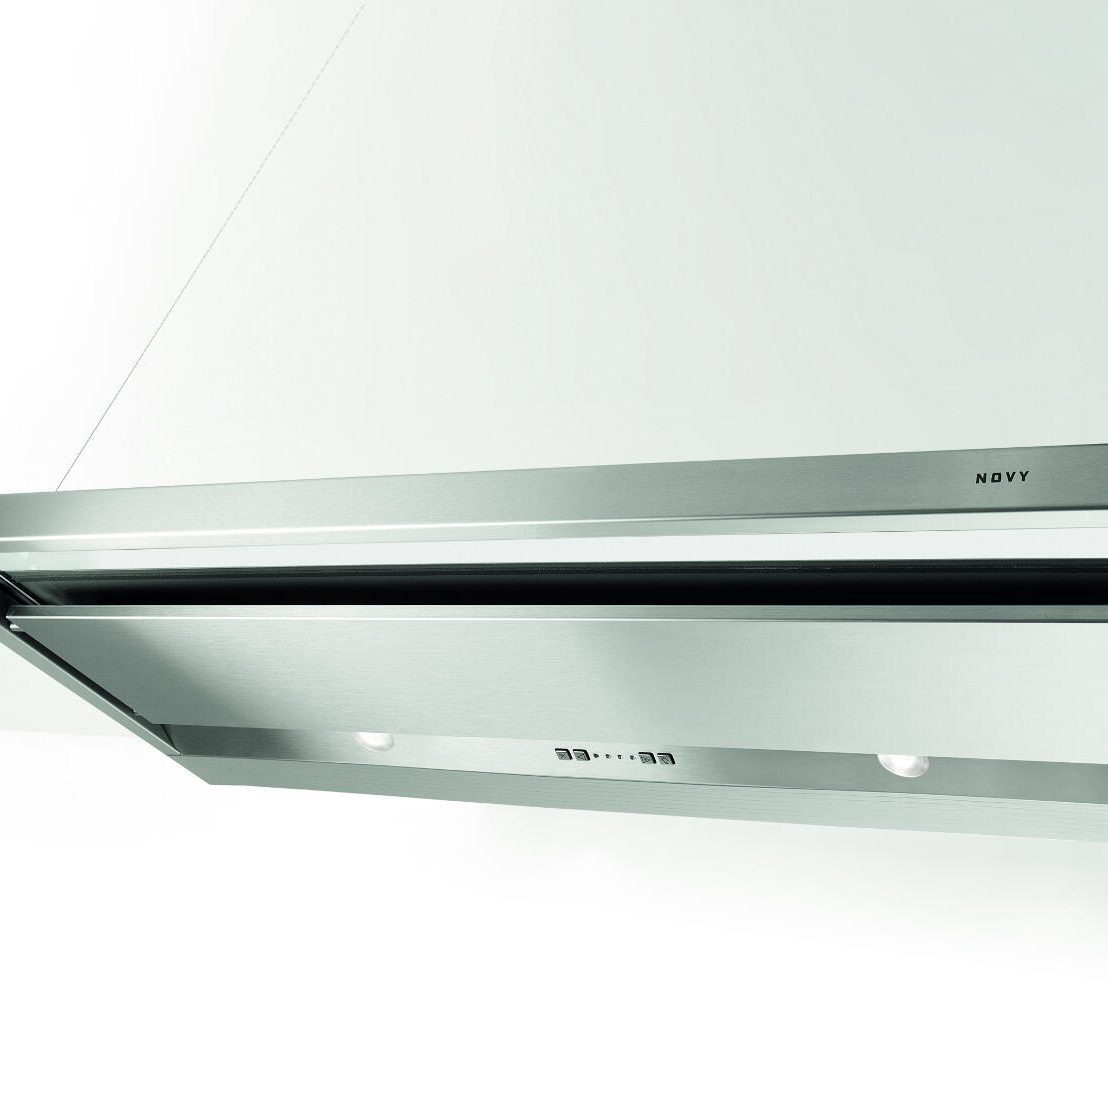 Novy 693 Telescopic Glass Stainless Steel Silent Cooker Hood